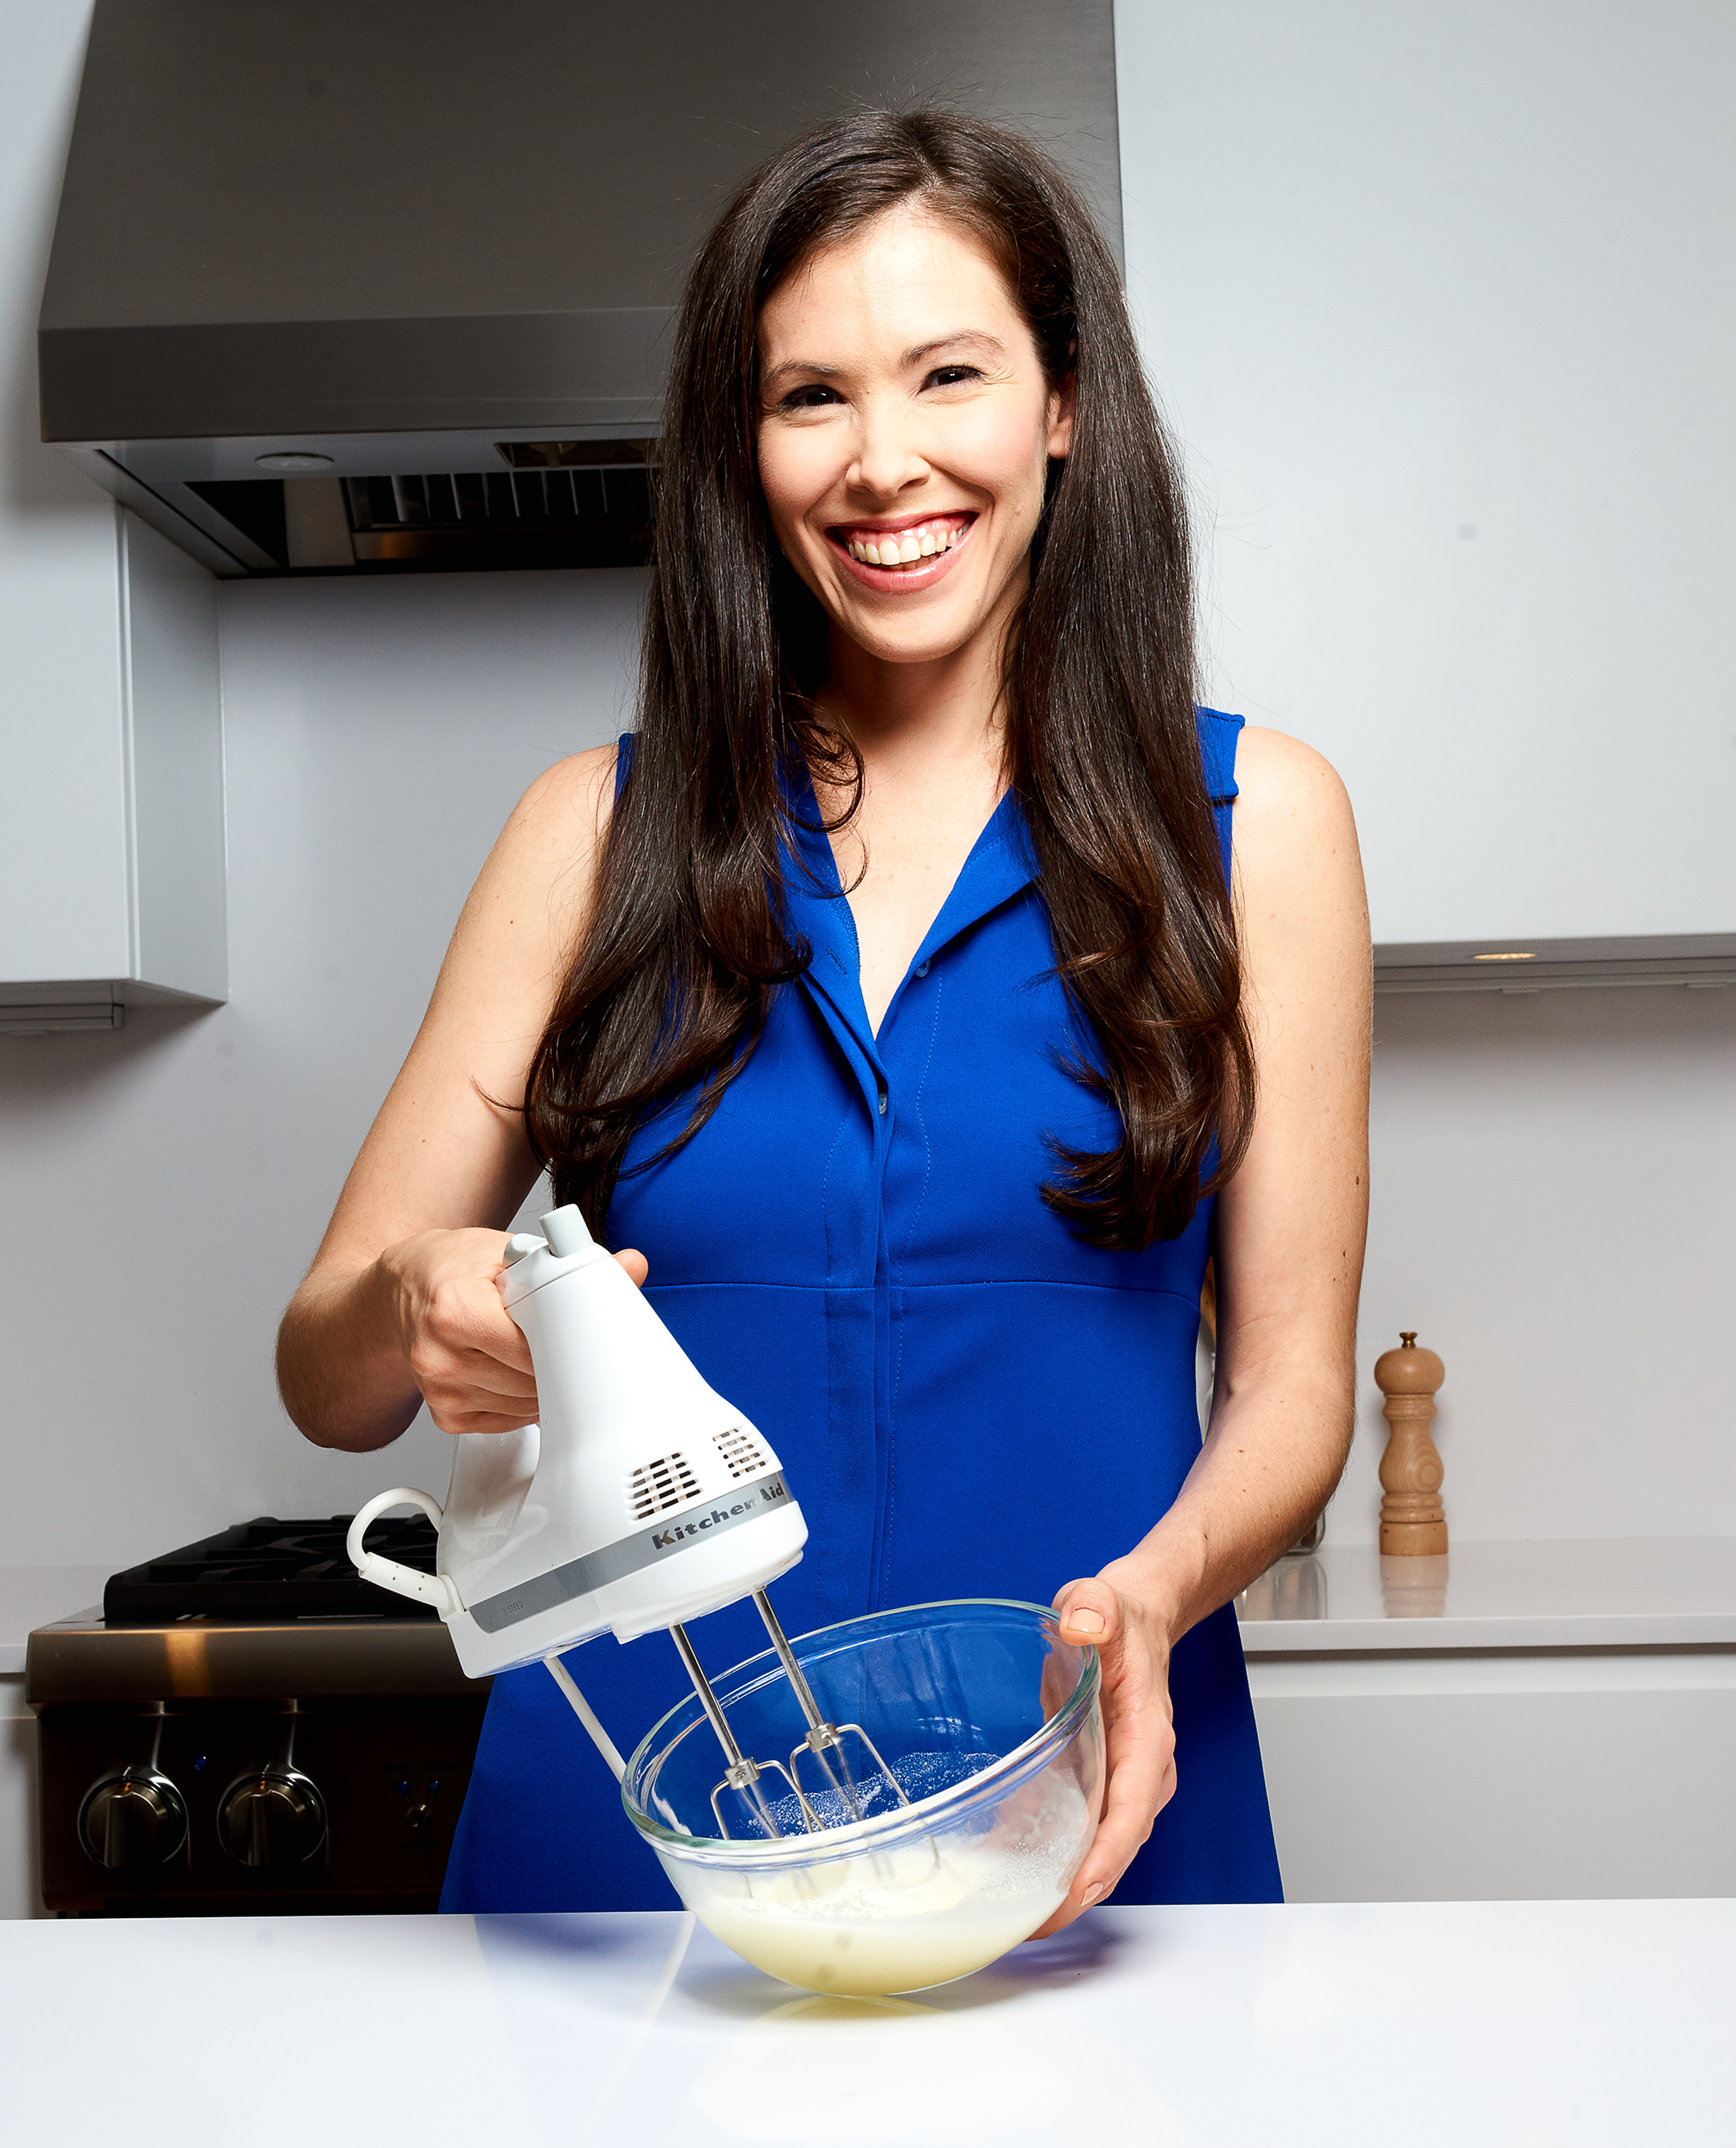 I host the tv show,  Potluck with Ali  on NYC Life and am the author of  Bring It! . My goal is always to help people have judgement-free cooking - easy, fun, beautiful and filled with shortcuts. Thanks for checking out the site and hope you'll bookmark it for many more recipes and advice to come.